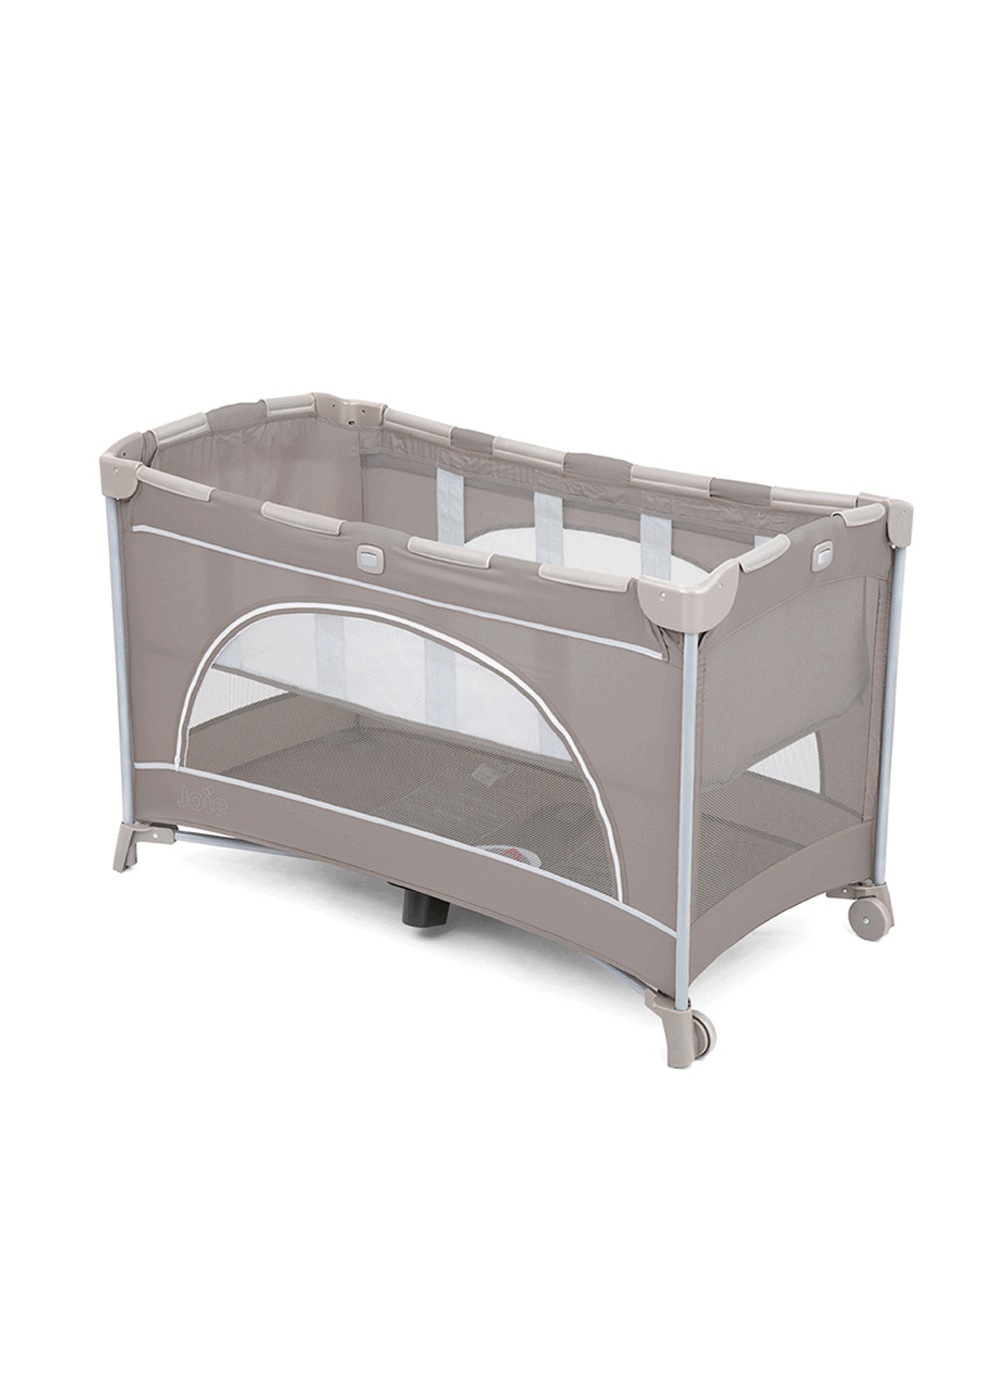 Joie Allura 120 Playpen Dots with cushioned Rounded Edges For Safety is the best Baby and Crib Bedding in Singapore for newborns